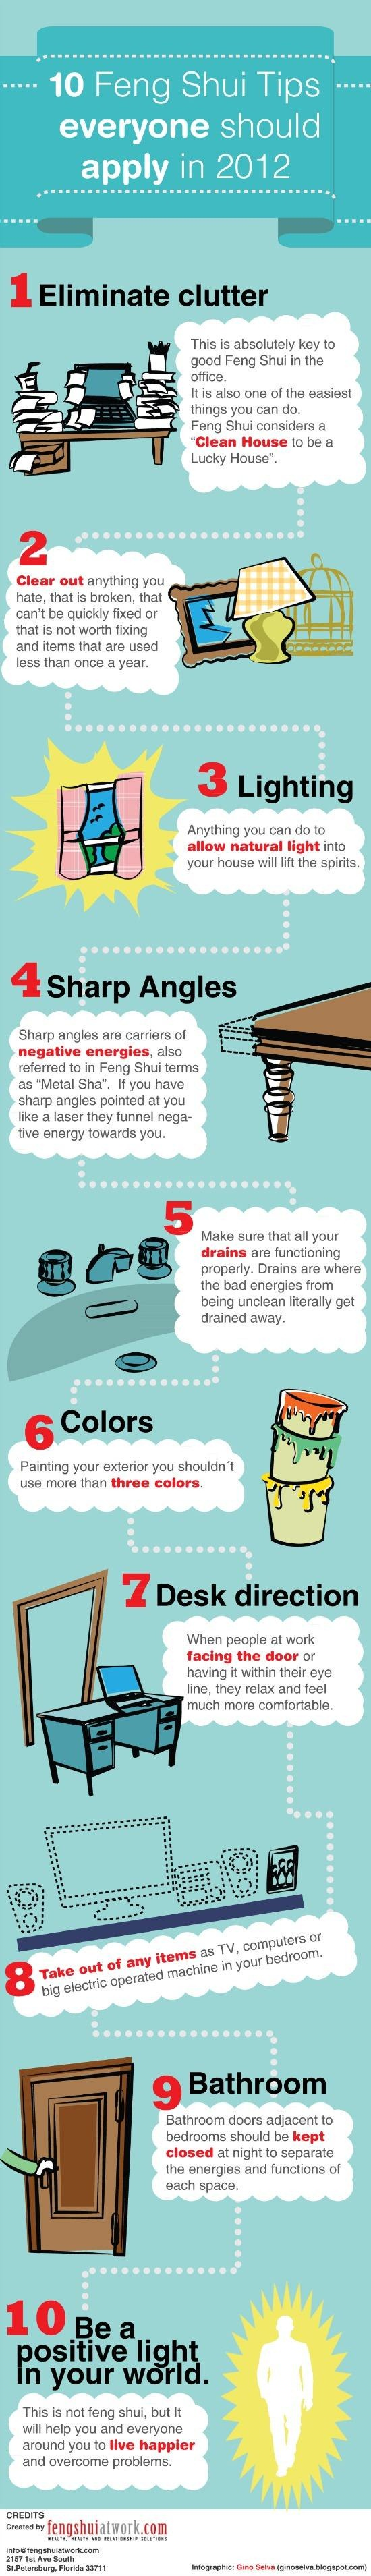 Top 10 Feng Shui Tips You Really Need [Infographic]